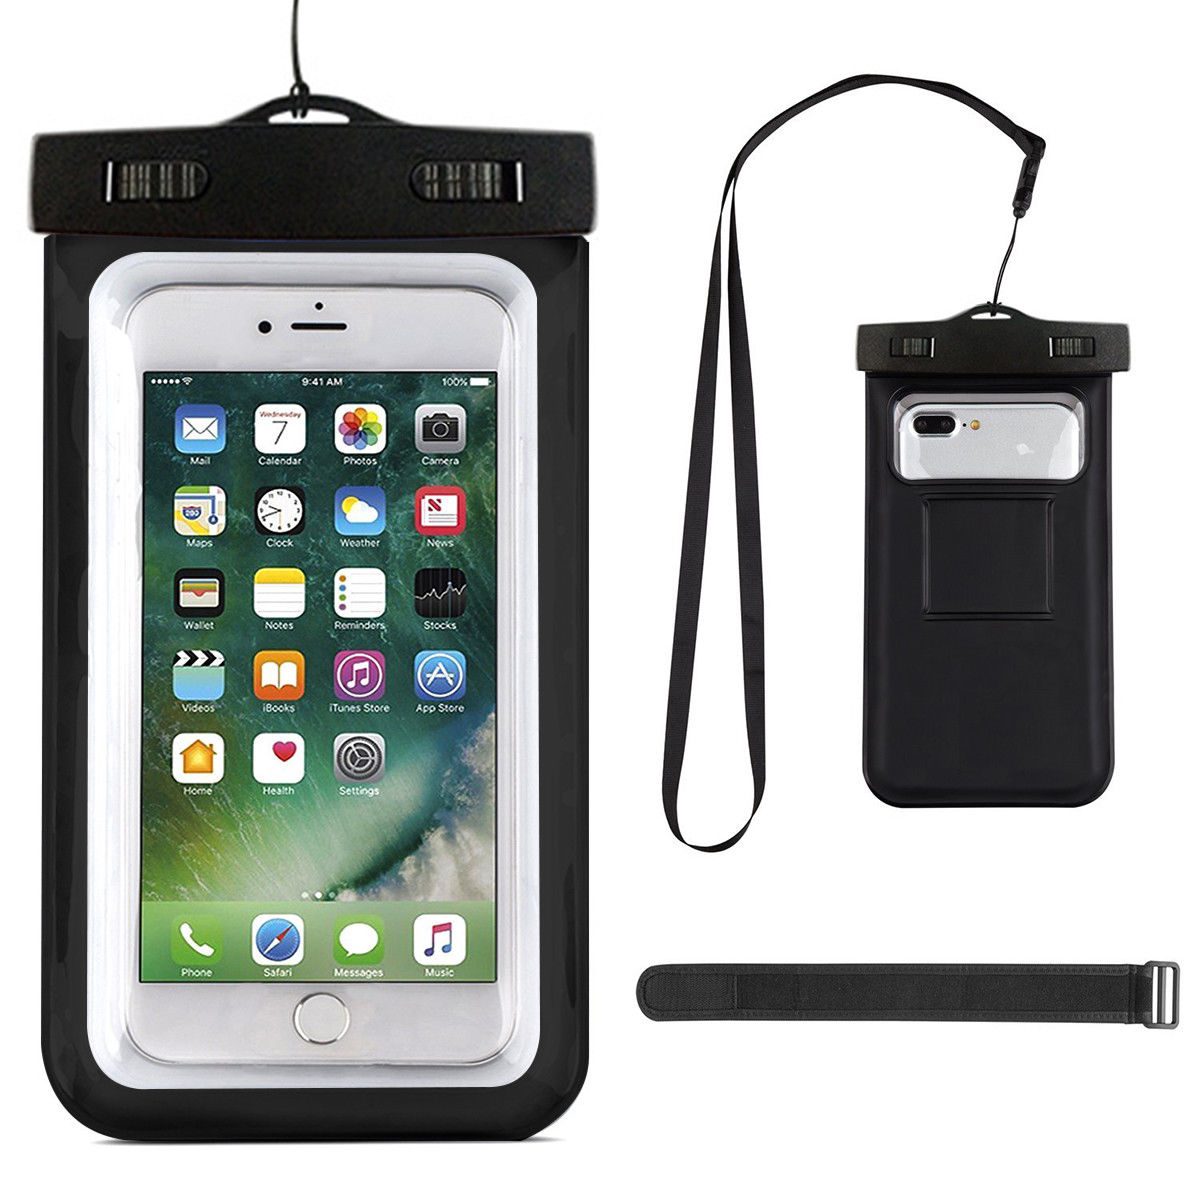 "Universal Waterproof Case, Mignova Cellphone Dry Bag Pouch with Lanyard Armband Strap for Apple iPhone X, 8, 7, 6 6s Plus Samsung Note 8 S8, S8 Plus S7, S7 Edge up to 6.0"" diagonal (Black)"